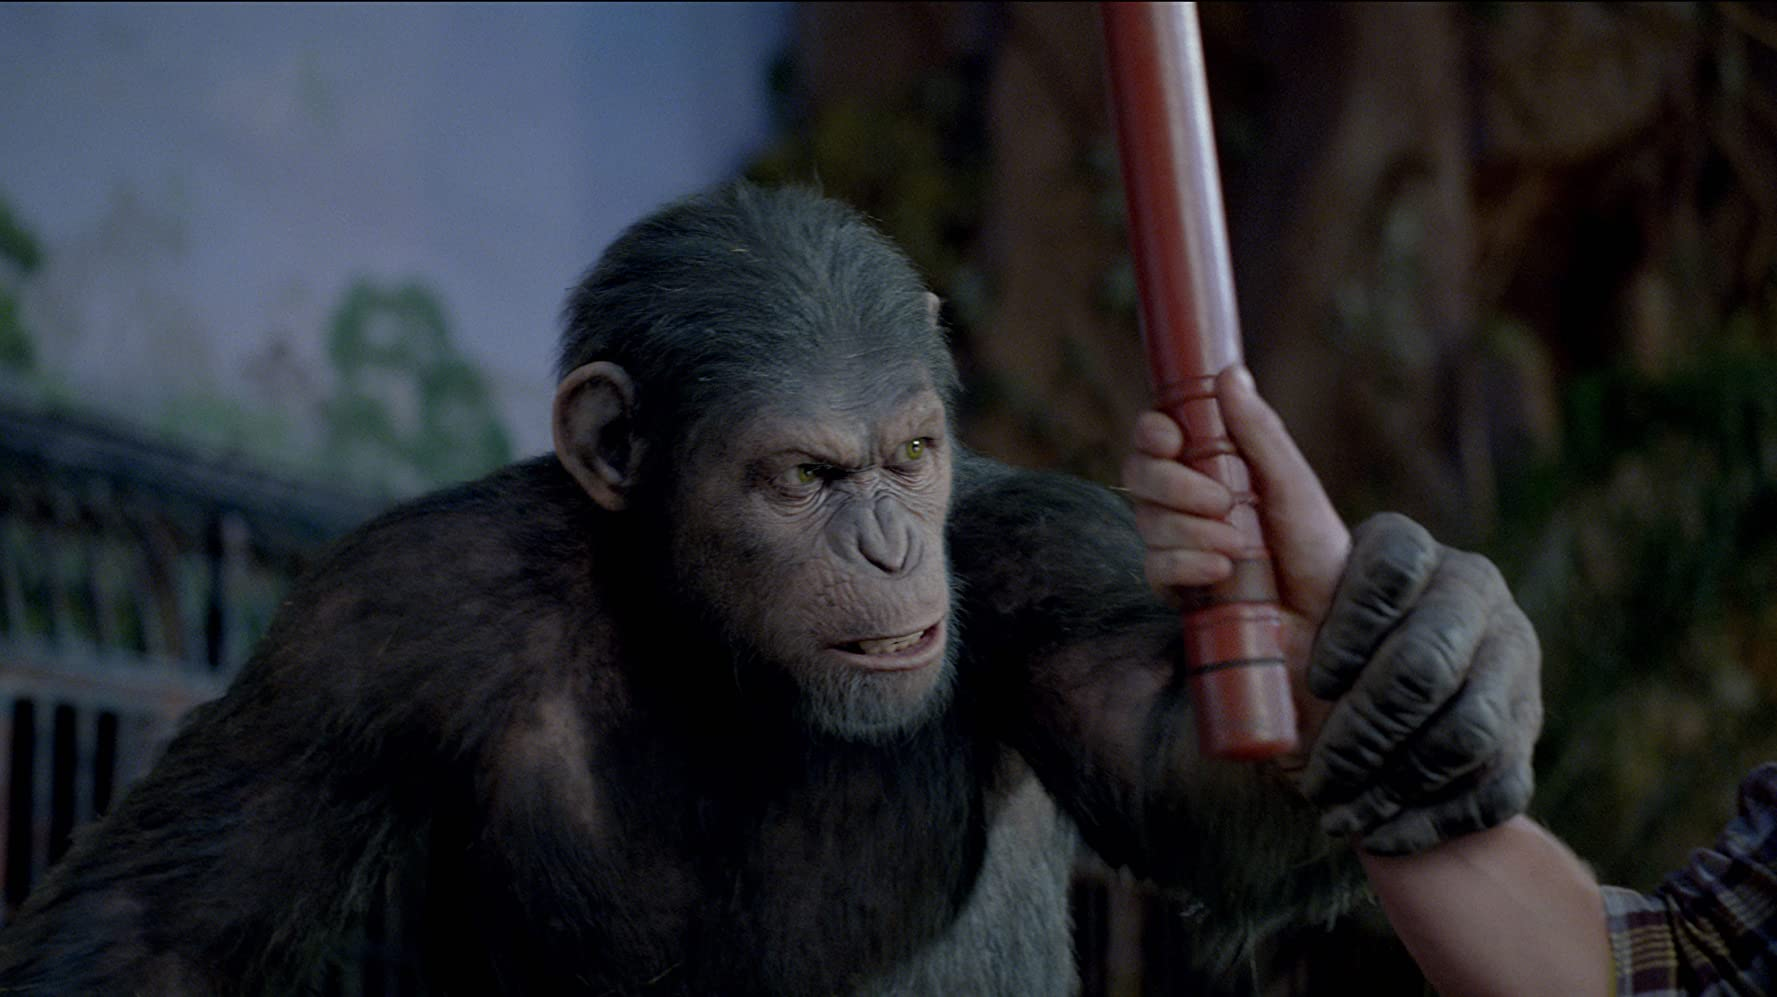 Andy Serkis in Rise of the Planet of the Apes (2011)